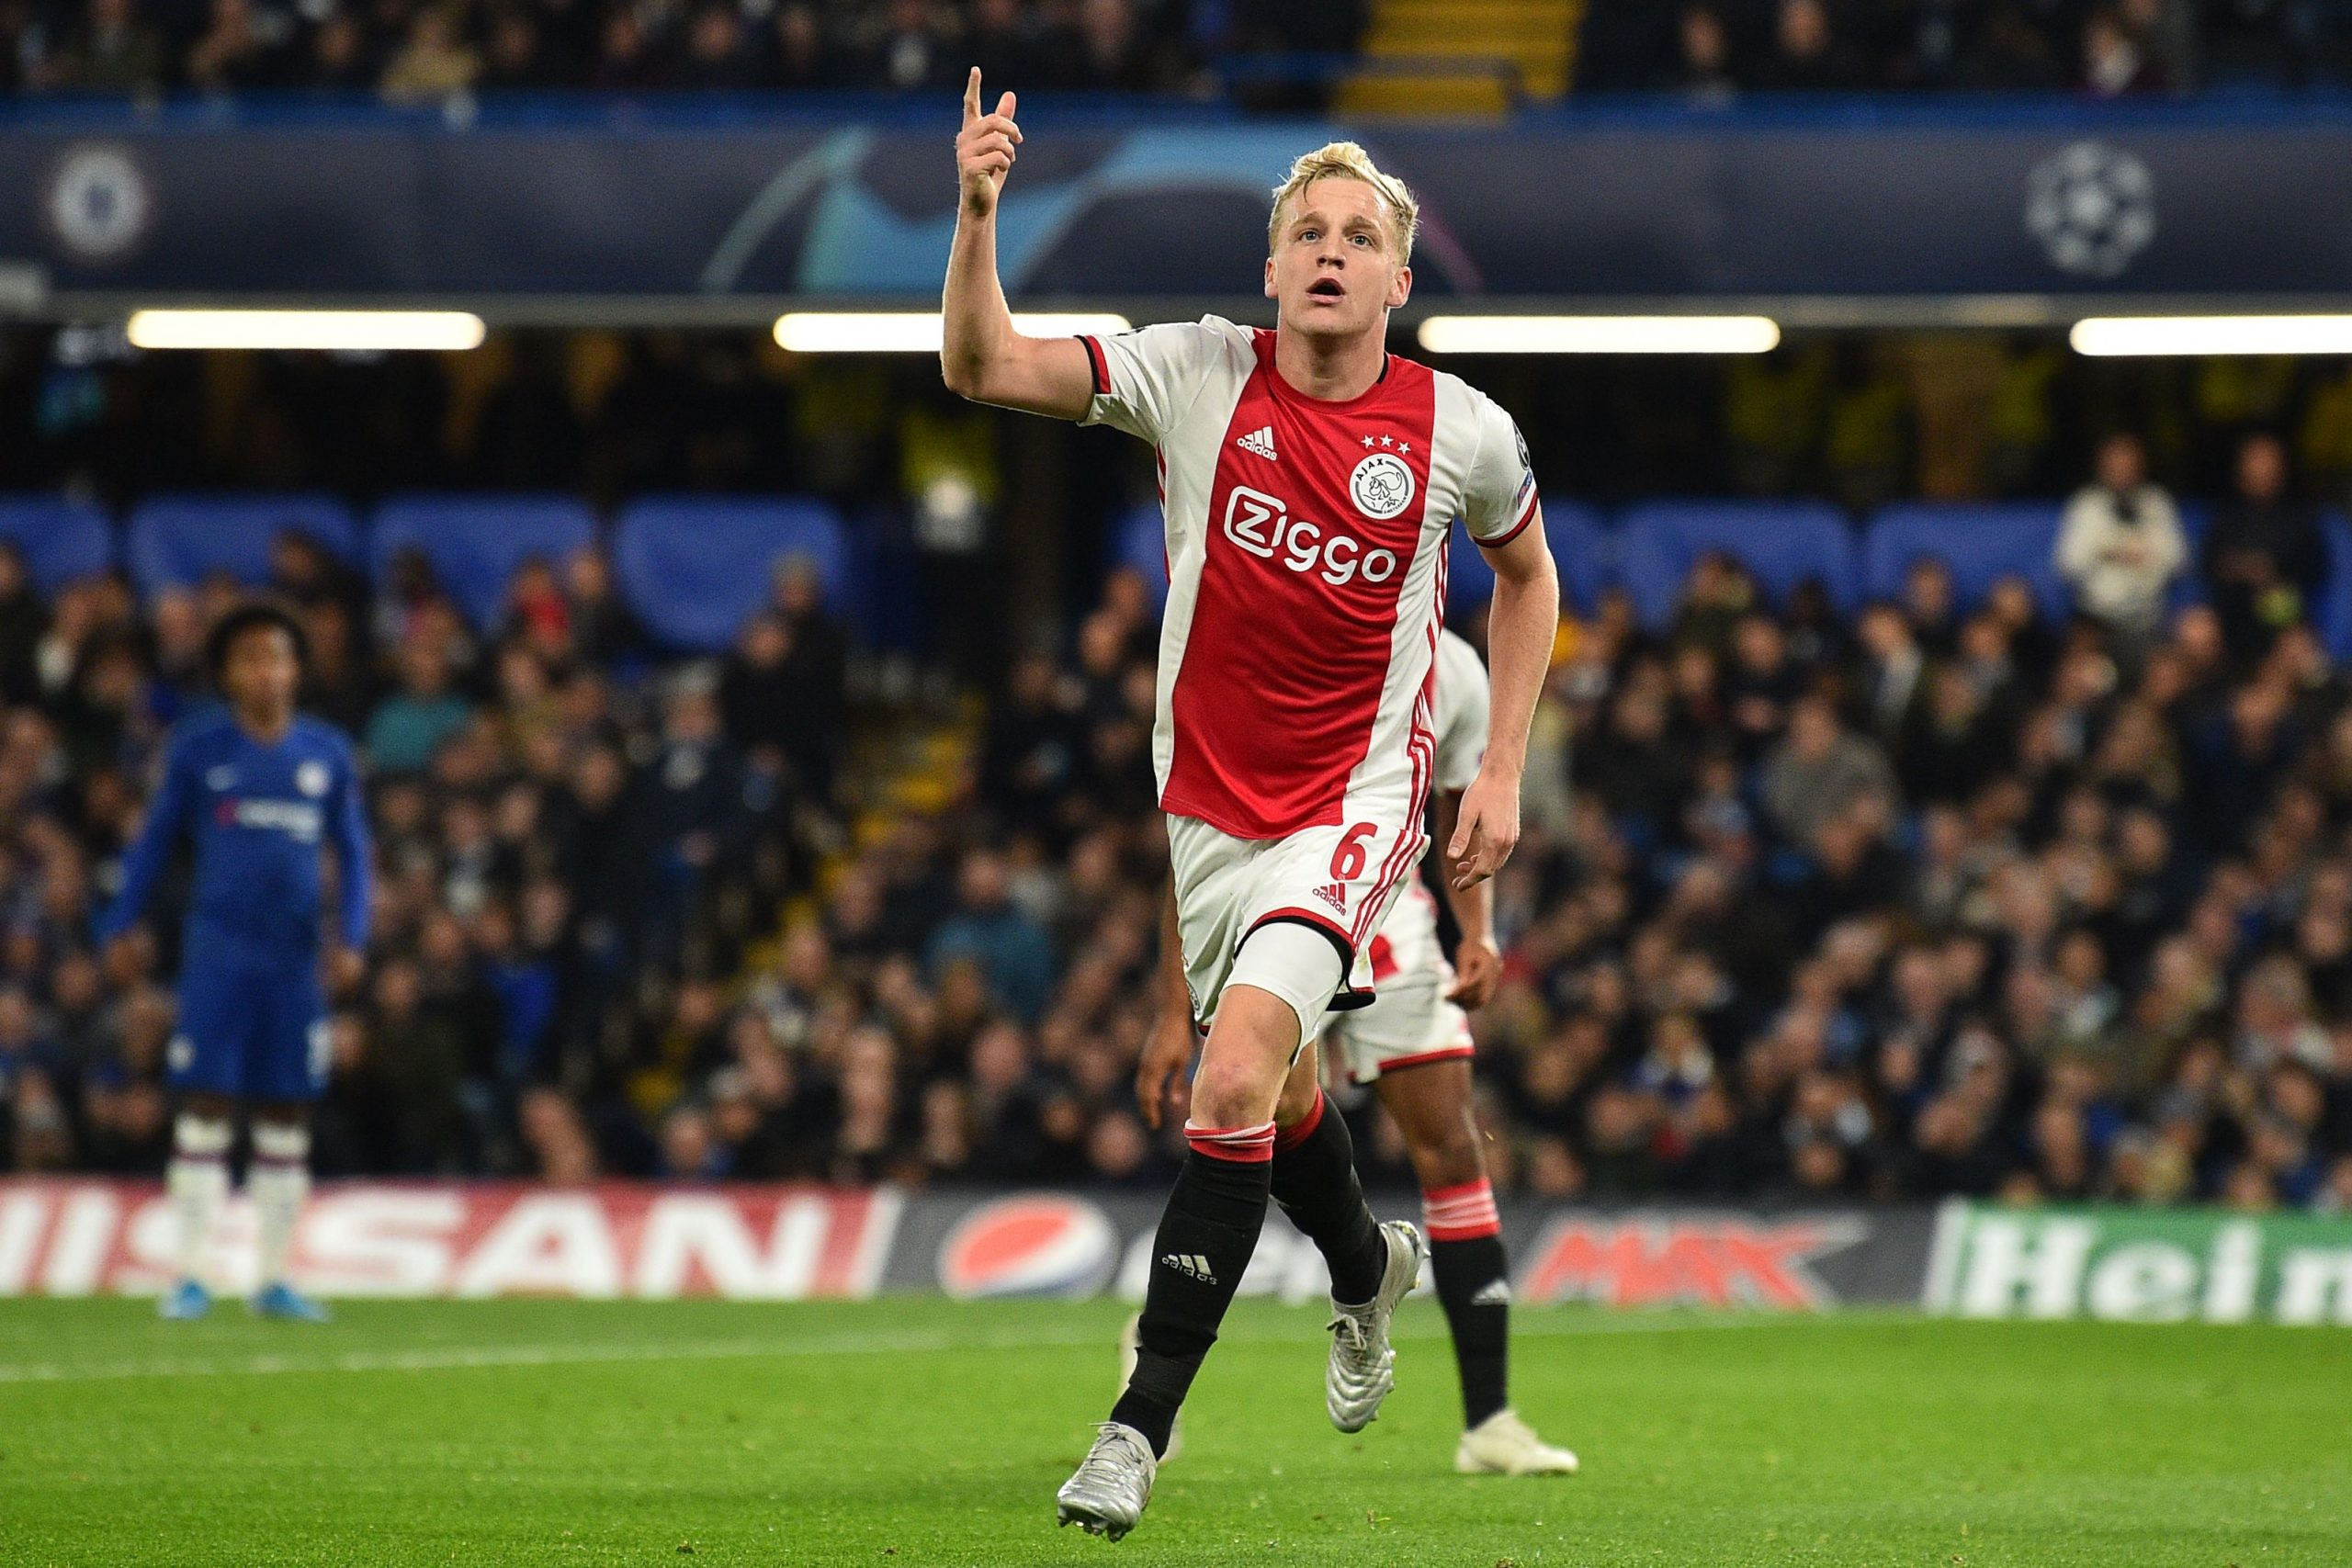 Scout Report: What Donny Van de Beek brings to United – utdreport